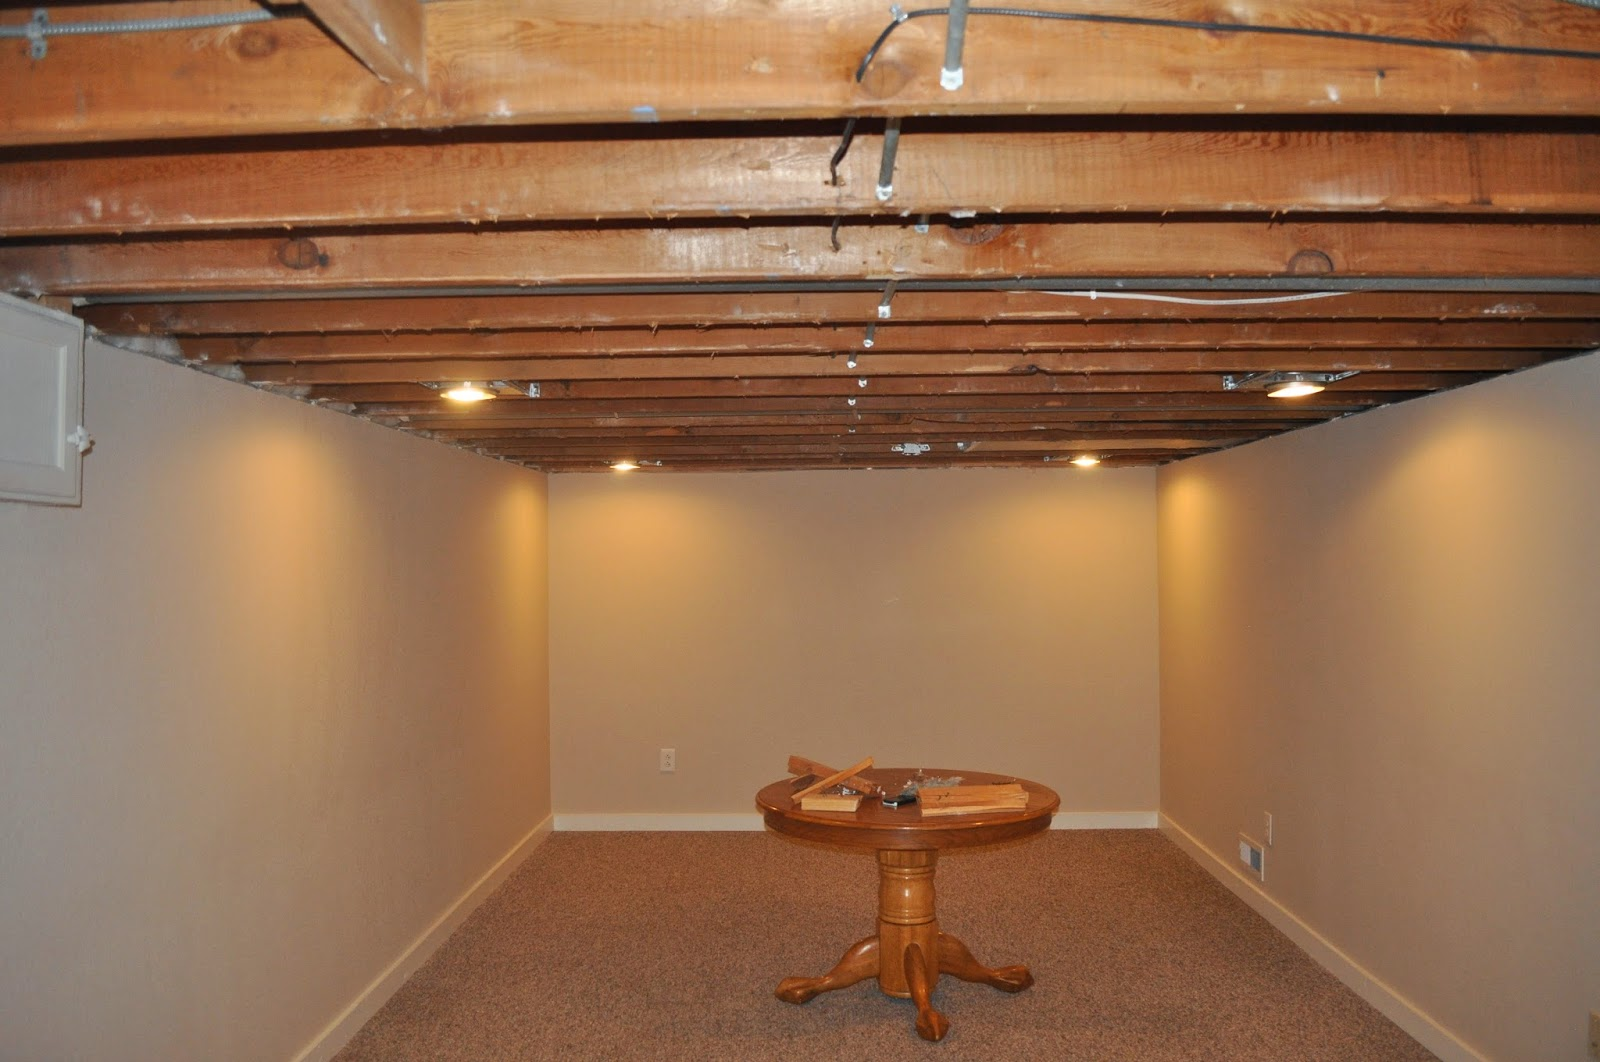 Superieur Ceiling, Basement, Paint, Painted Ceiling, Joists, Joist, Flexio 590 Sprayer